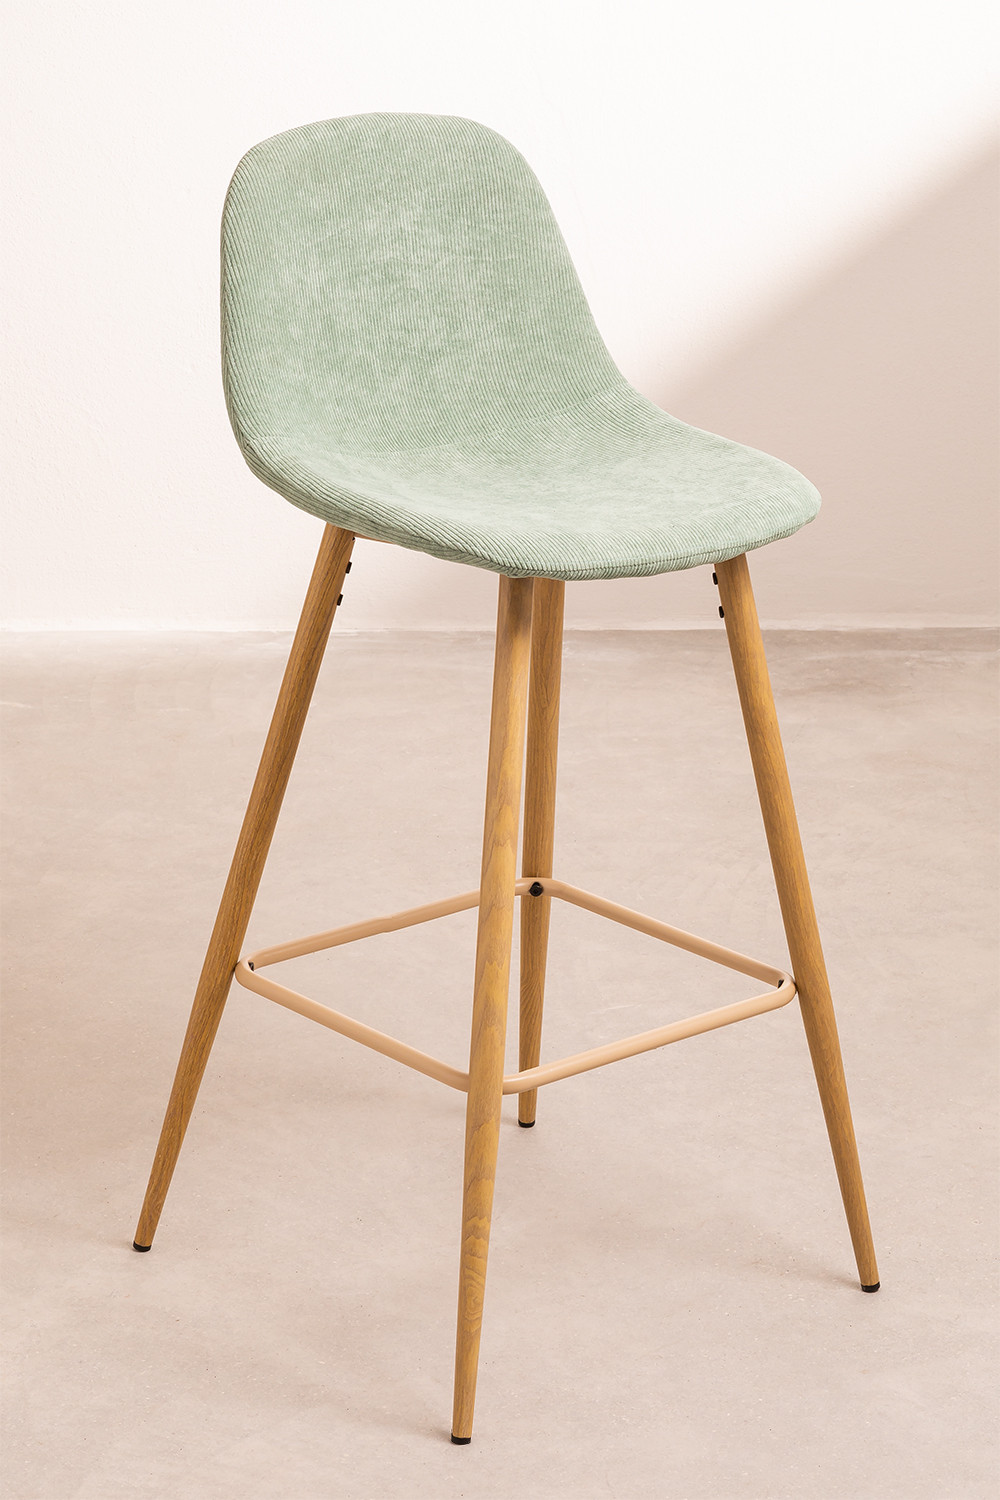 Pack 2 Tall Stools in Corduroy Glamm, gallery image 1